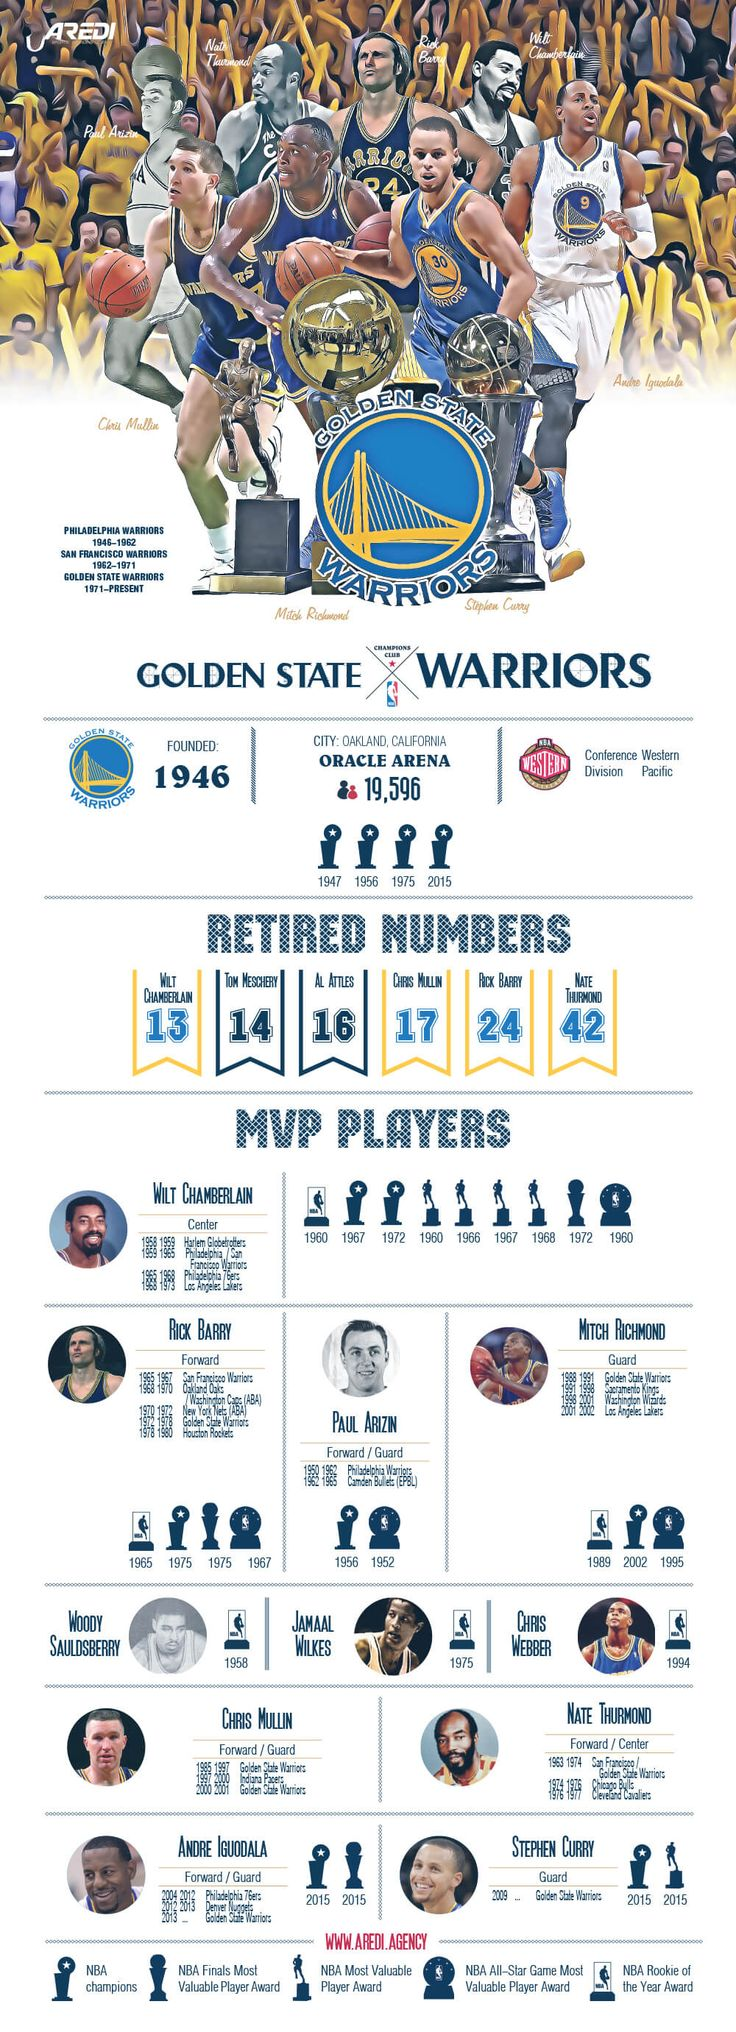 Golden State Warriors, infographic, basketball, sport, NBA, design, create. art, branding, MVP, Legends, champions, Wilt Chamberlain, Chris Mullin, Nate Thurmond, Rick Barry,Tom Meschery, Jo Jo White, Stephen Curry, Andre Iguodala, #sportaredi